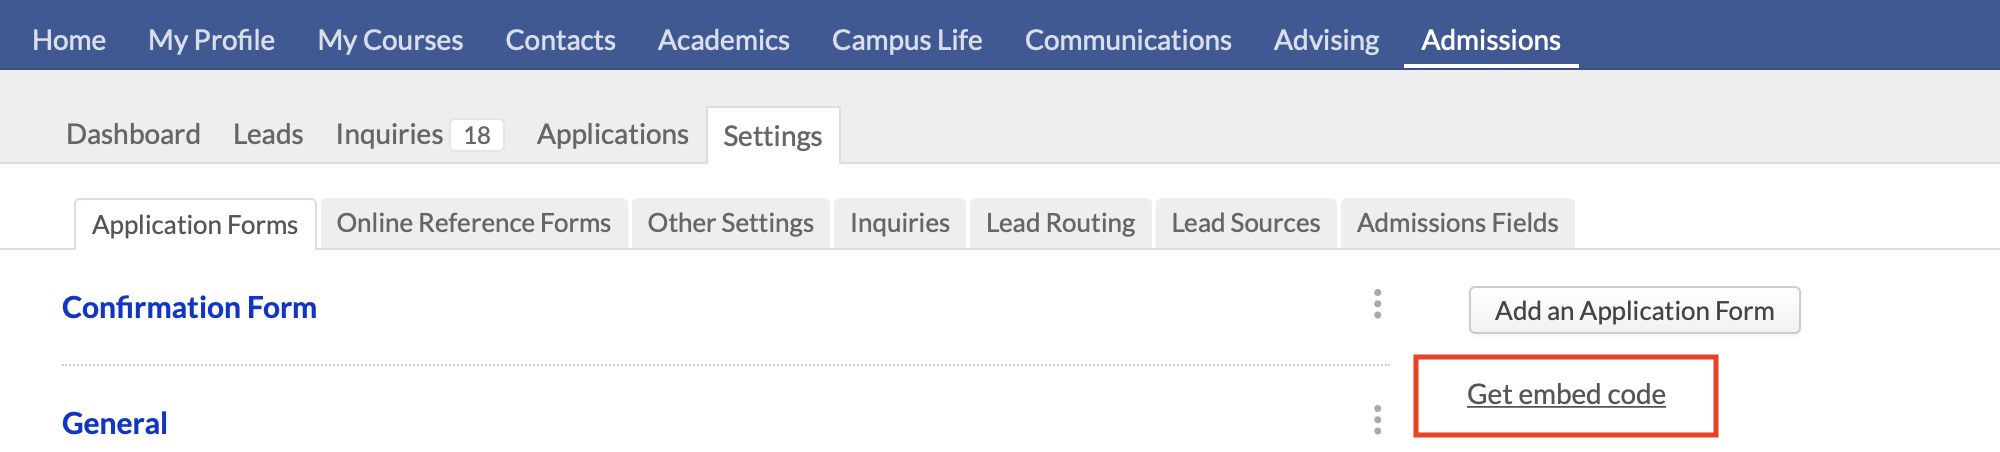 admissions_settings_get_embed_all